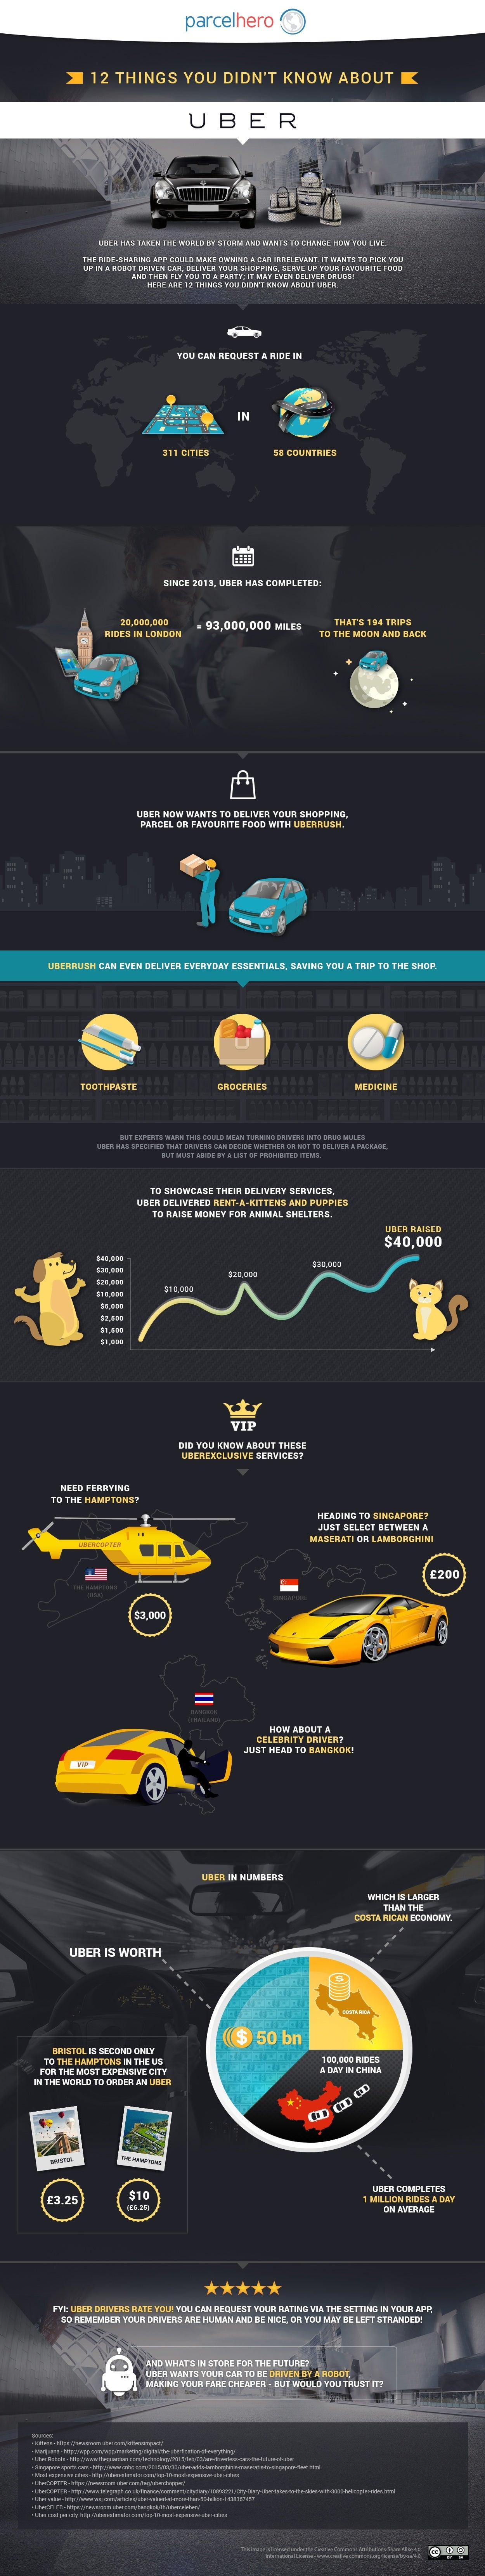 UBER_infographic